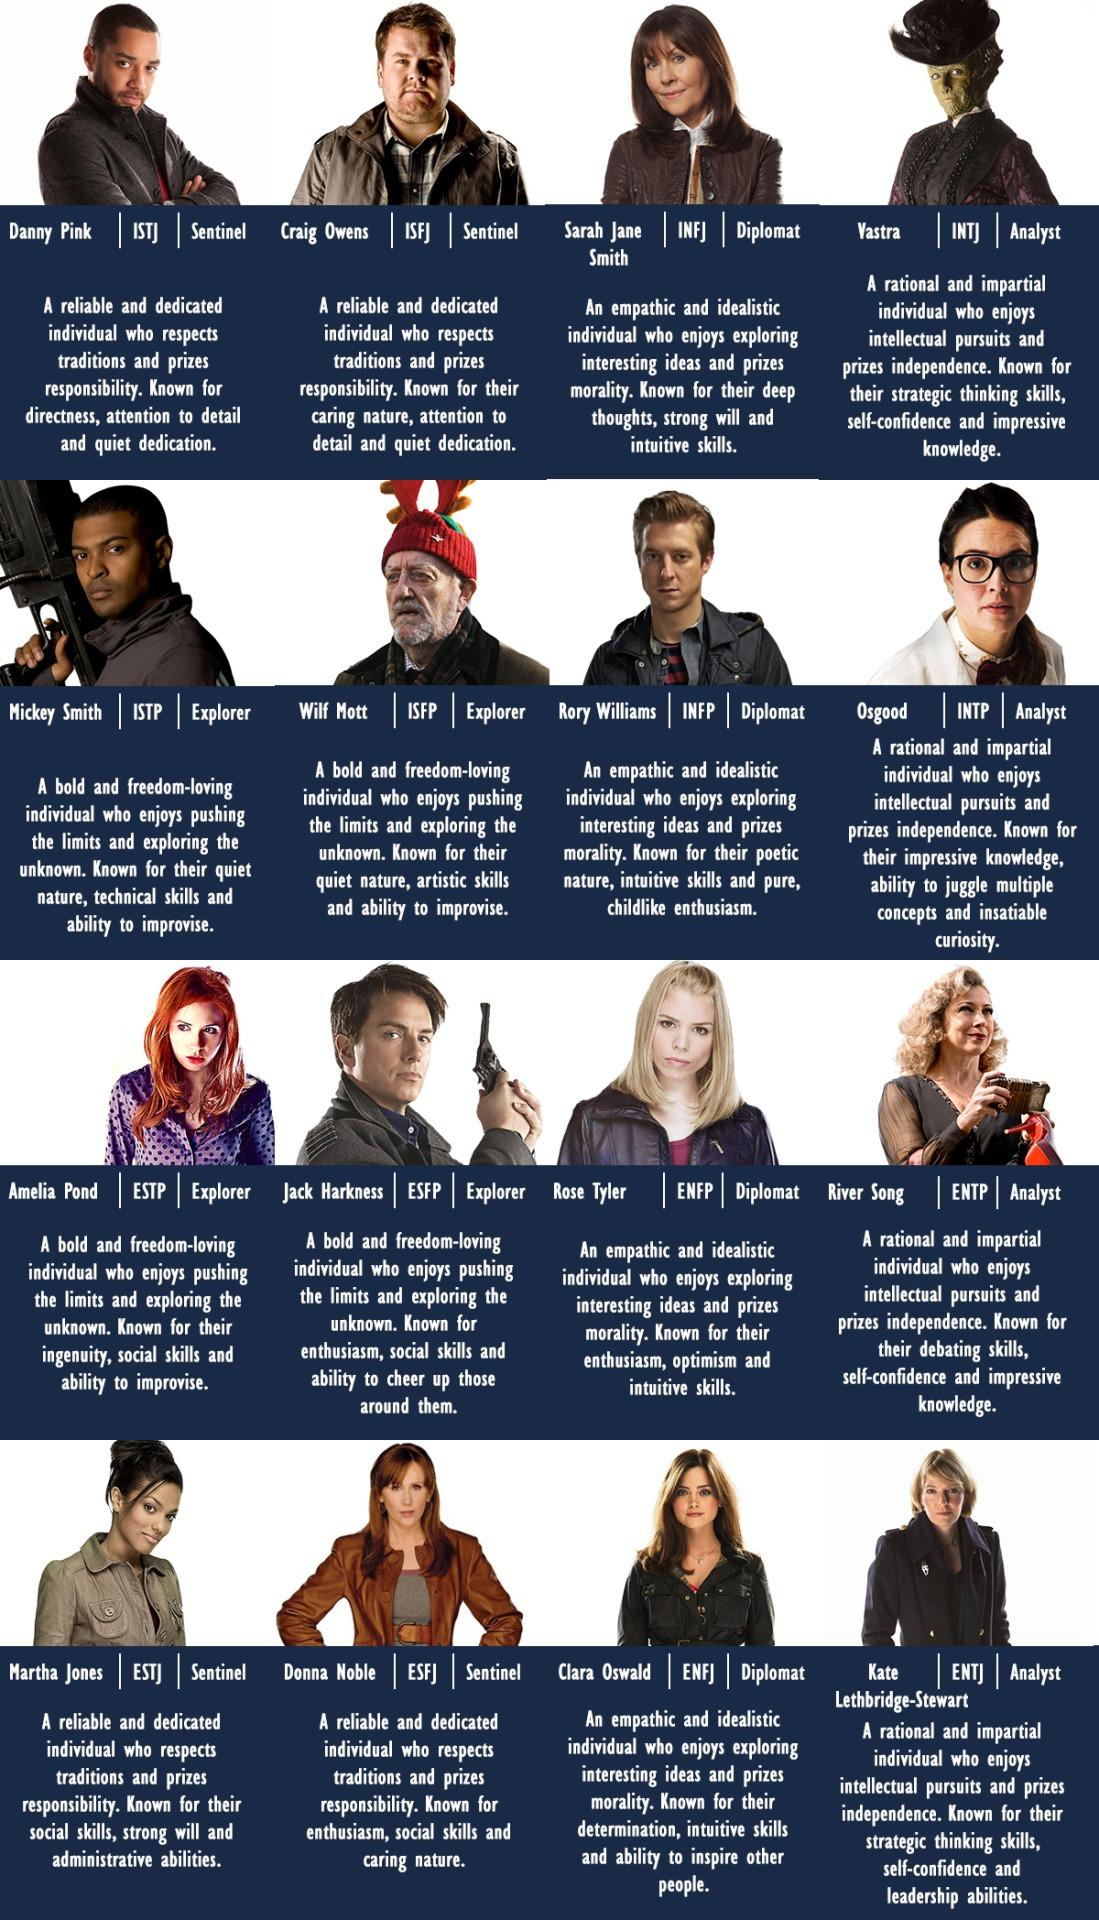 dr who mbti chart myers briggs type indicator mbti know your meme. Black Bedroom Furniture Sets. Home Design Ideas